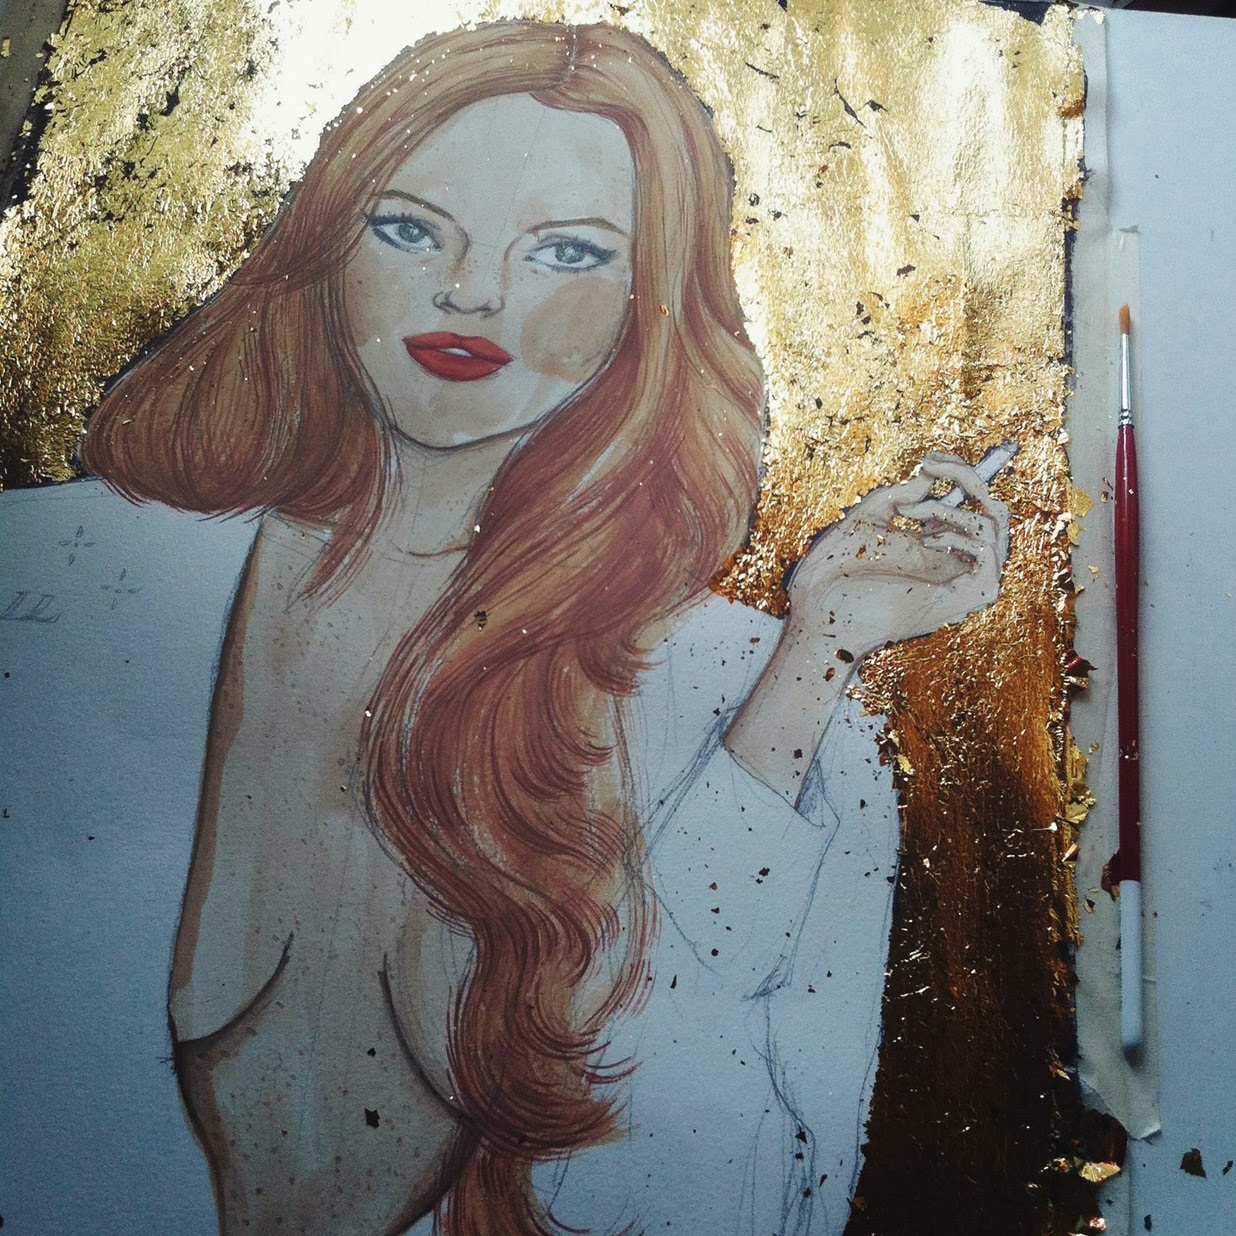 Kitty N. Wong / Lindsay Lohan painting